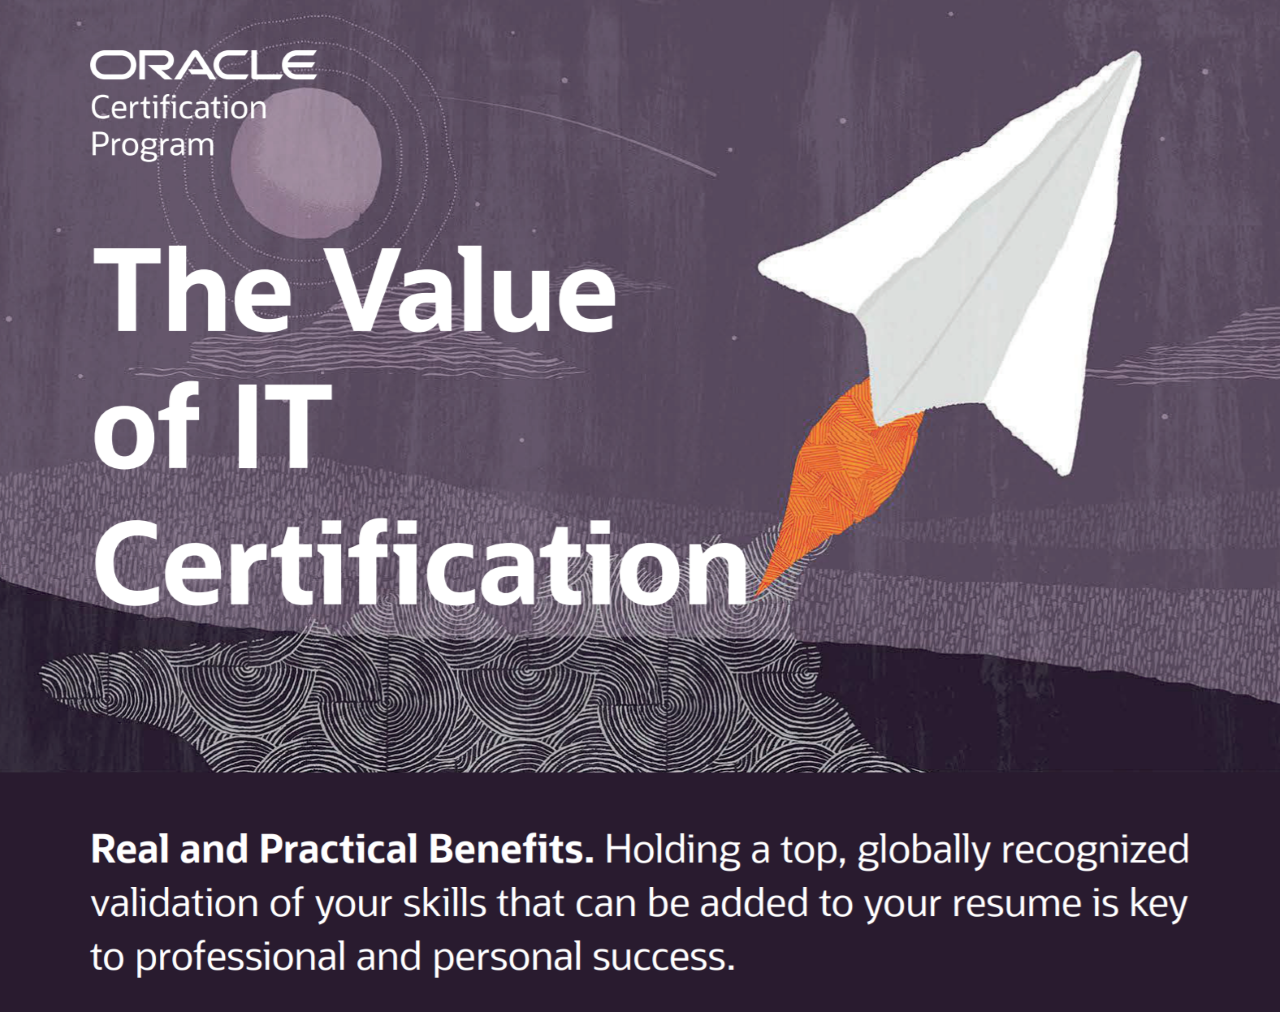 Oracle certification Program, the value of IT Certification, Real and Practical Benefits. Holding a top, globally recognized validation of your skills that can be added to your resume is key to professional and personal success.